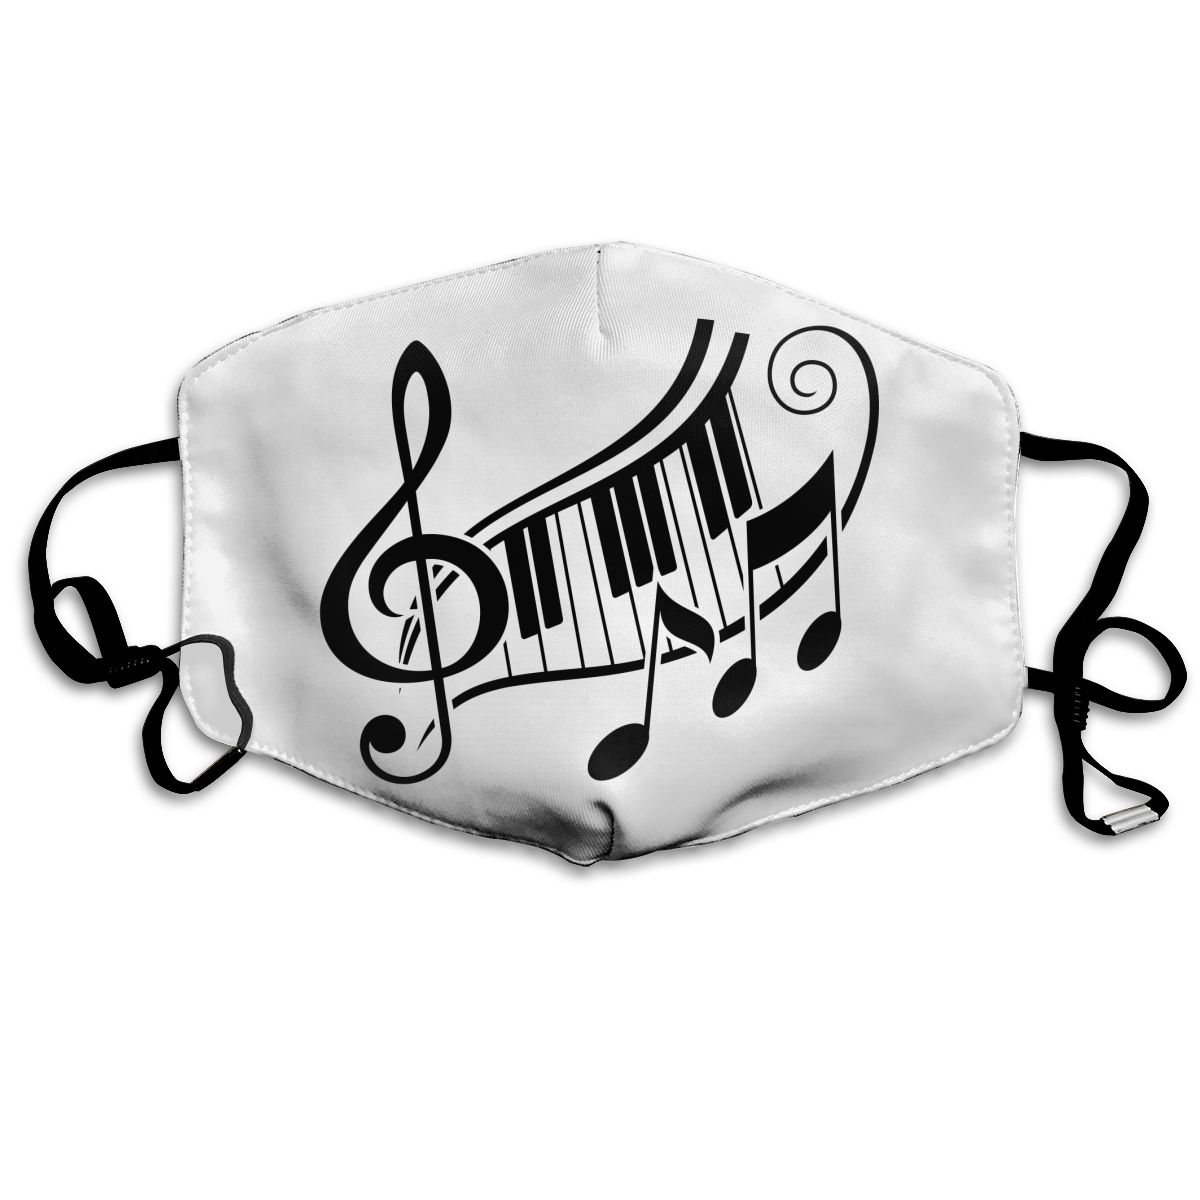 2020 Cartoon Music Notes Pattern Polyester Mask Party Respirator Keep Warm Cute Mask Camouflage Anti Dust Mouth Muffle Respirato